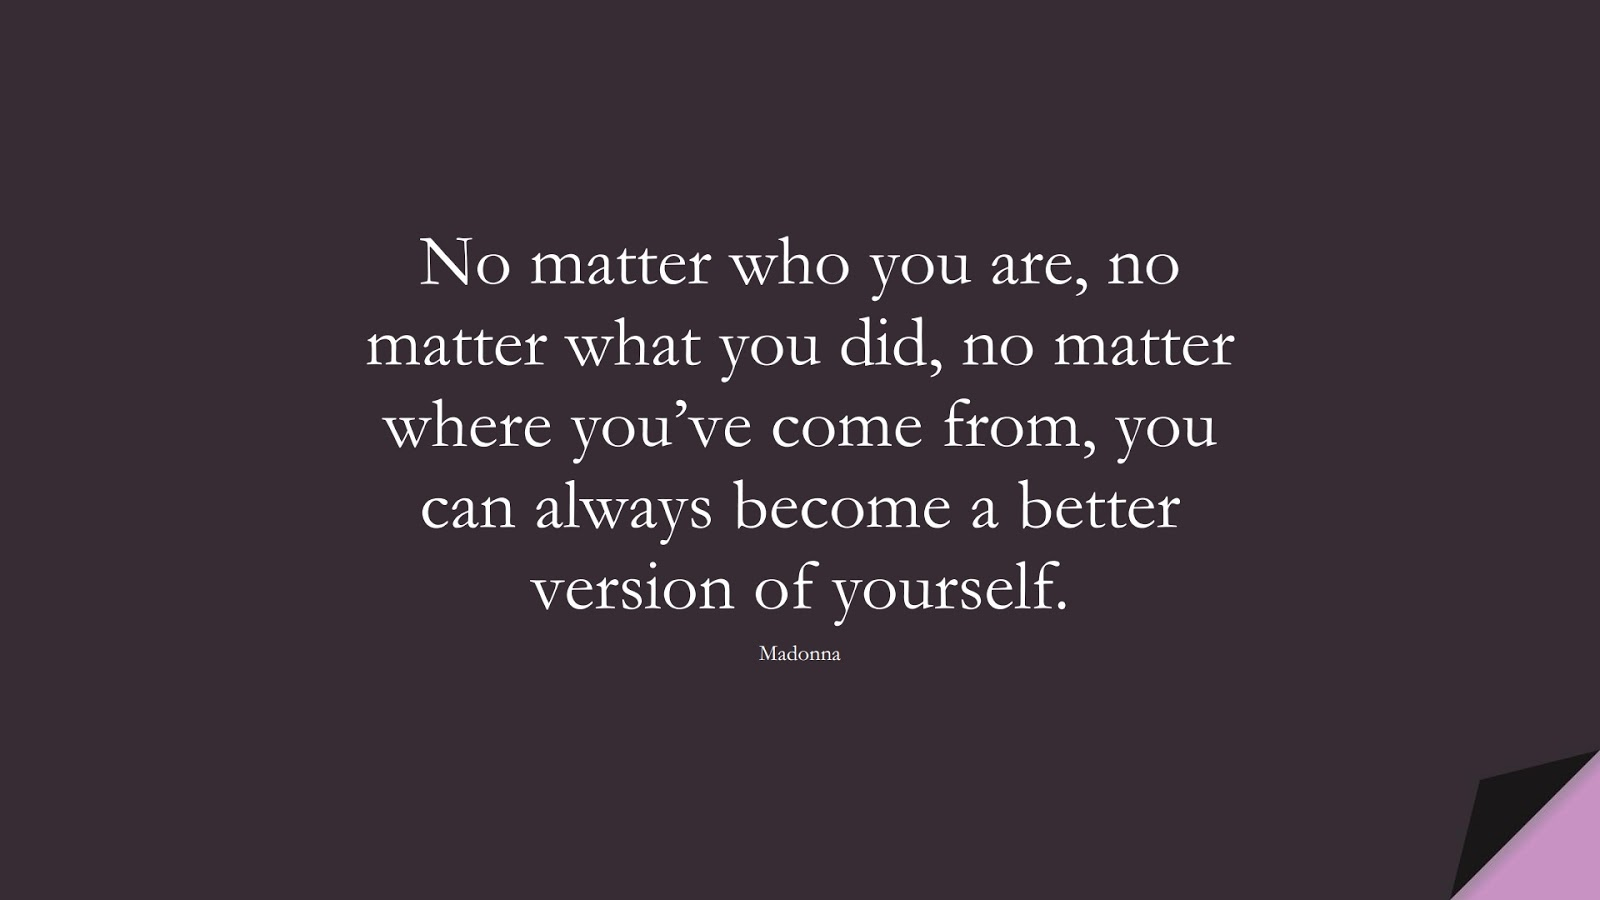 No matter who you are, no matter what you did, no matter where you've come from, you can always become a better version of yourself. (Madonna);  #MotivationalQuotes